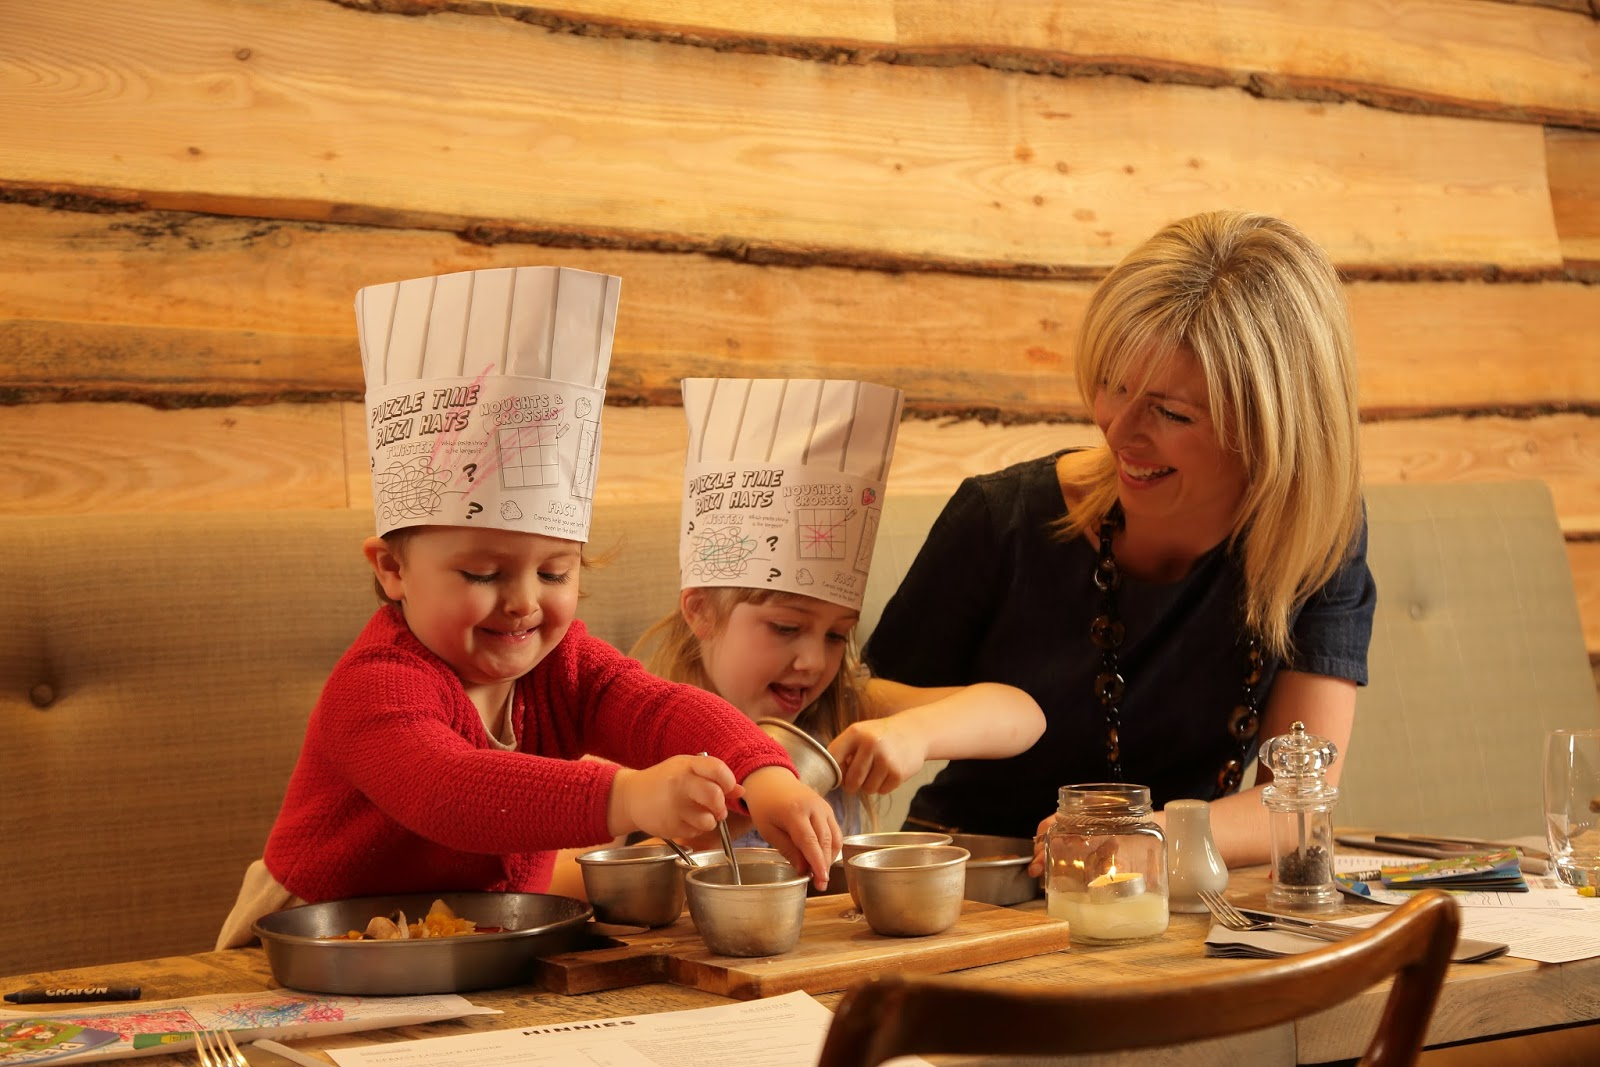 Children's menu and create your own pizza's at Hinnies restaurant, Whitley Bay